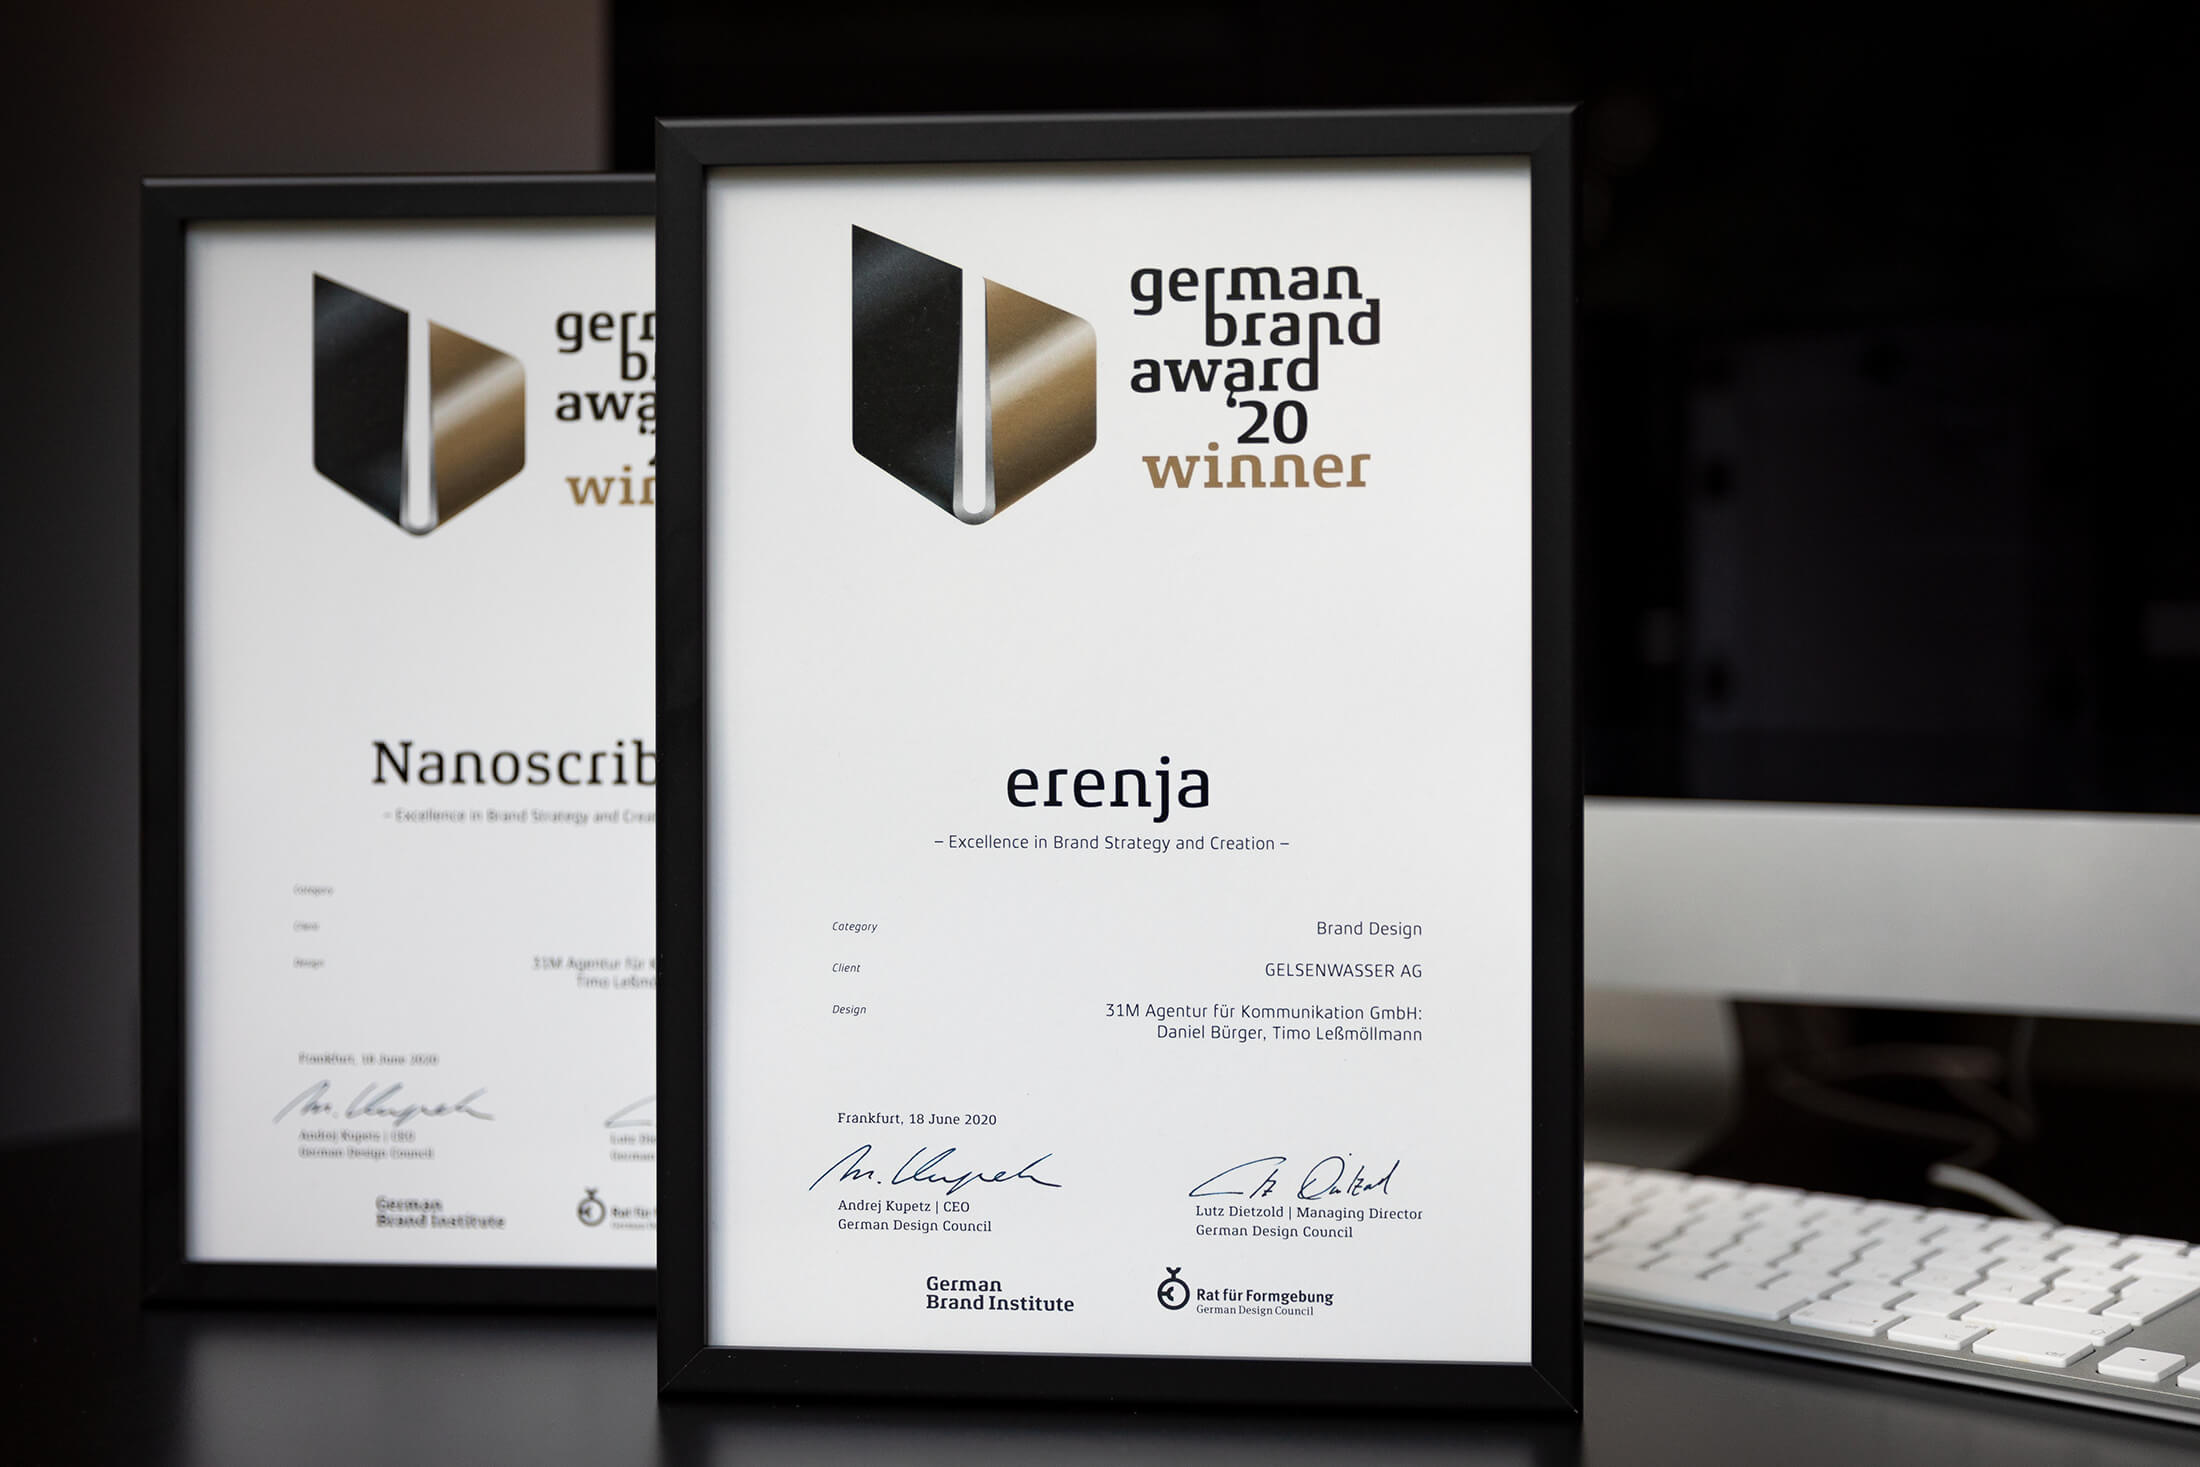 Urkunde German Brand Award